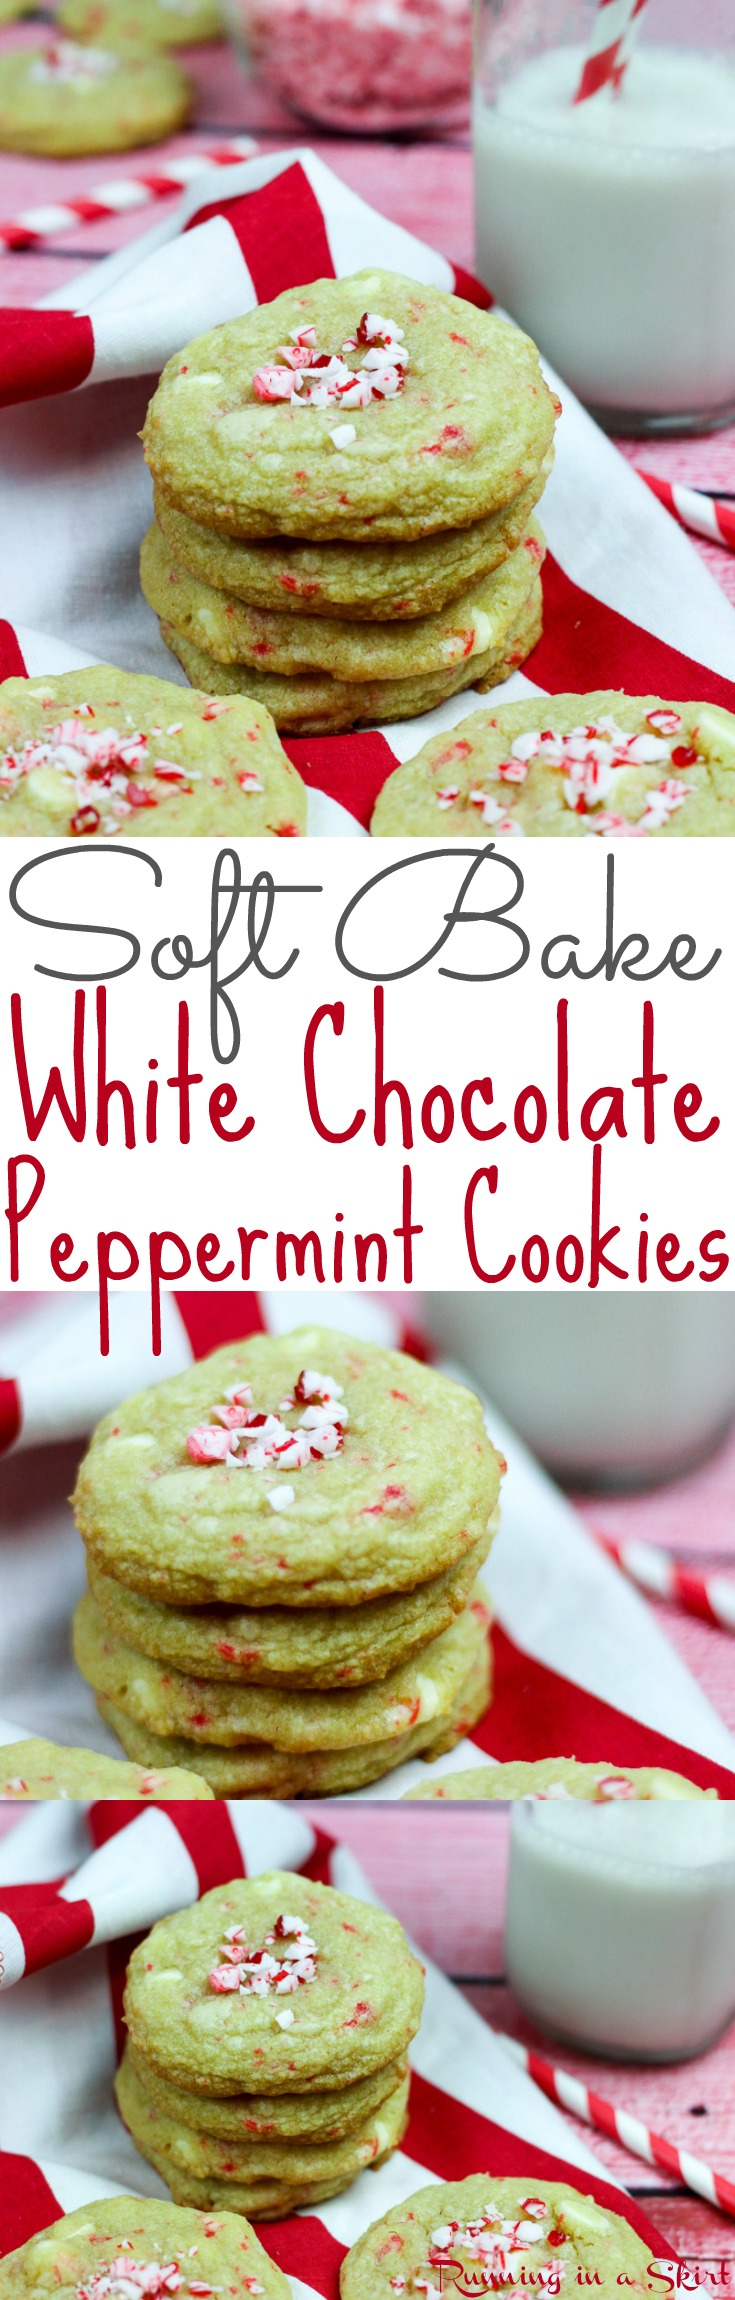 Simple, Soft Bake White Chocolate Peppermint Cookies recipe.  This easy desserts recipe is chewy and delicious... the perfect holiday foods.  Your families, friends and kids will love these.  Made in a small batch for healthy portion control. / Running in a Skirt via @juliewunder